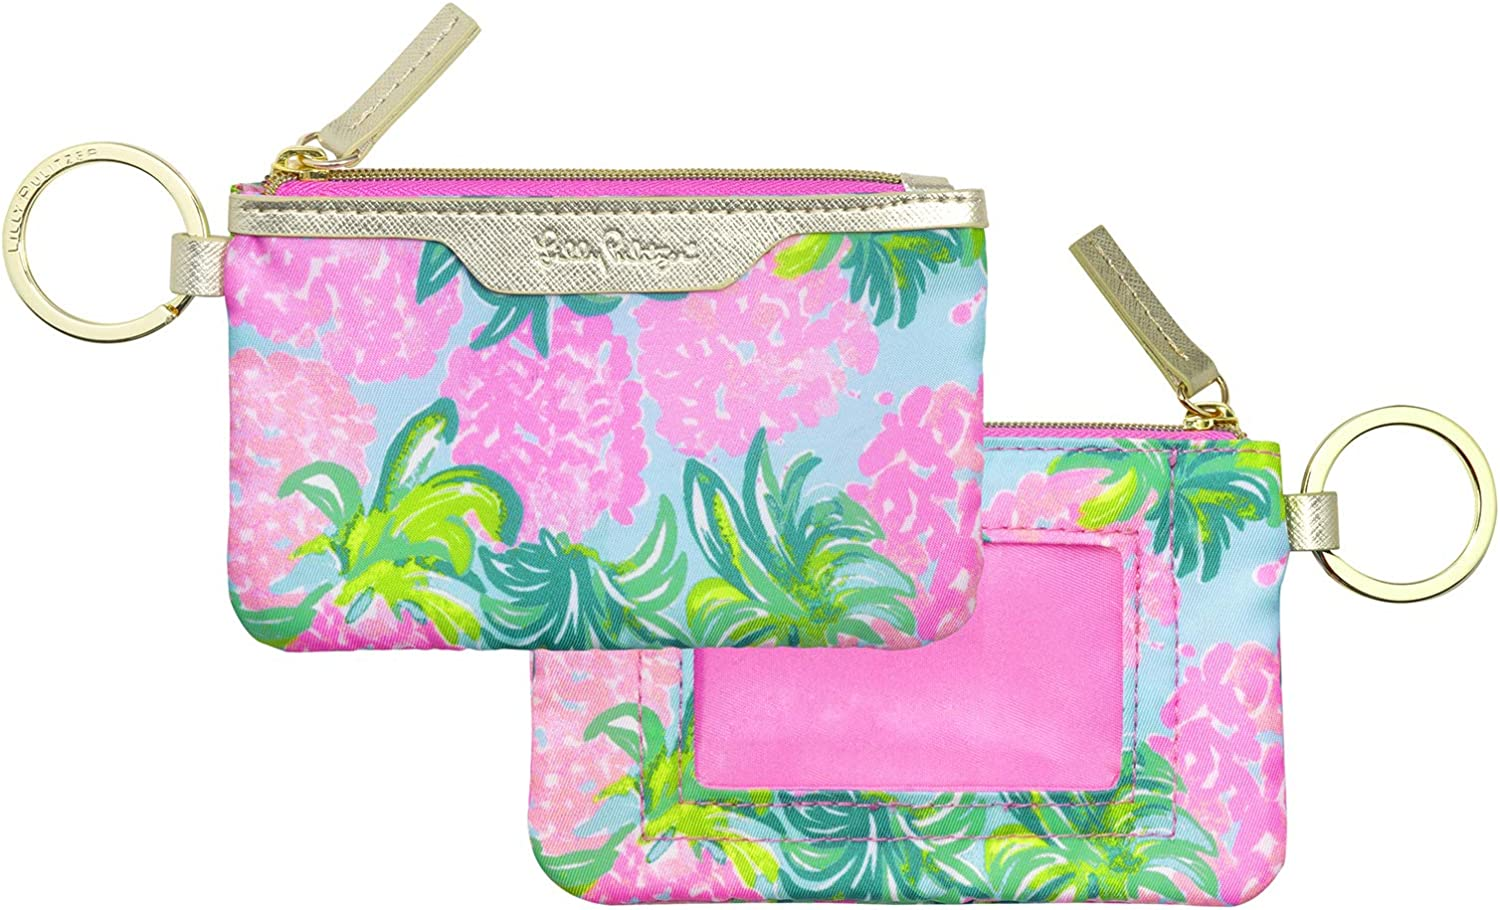 Lilly Pulitzer ID Case Keychain Wallet with Zip Close, Cute Durable Card Holder for Women Teen Girls, Pineapple Shake